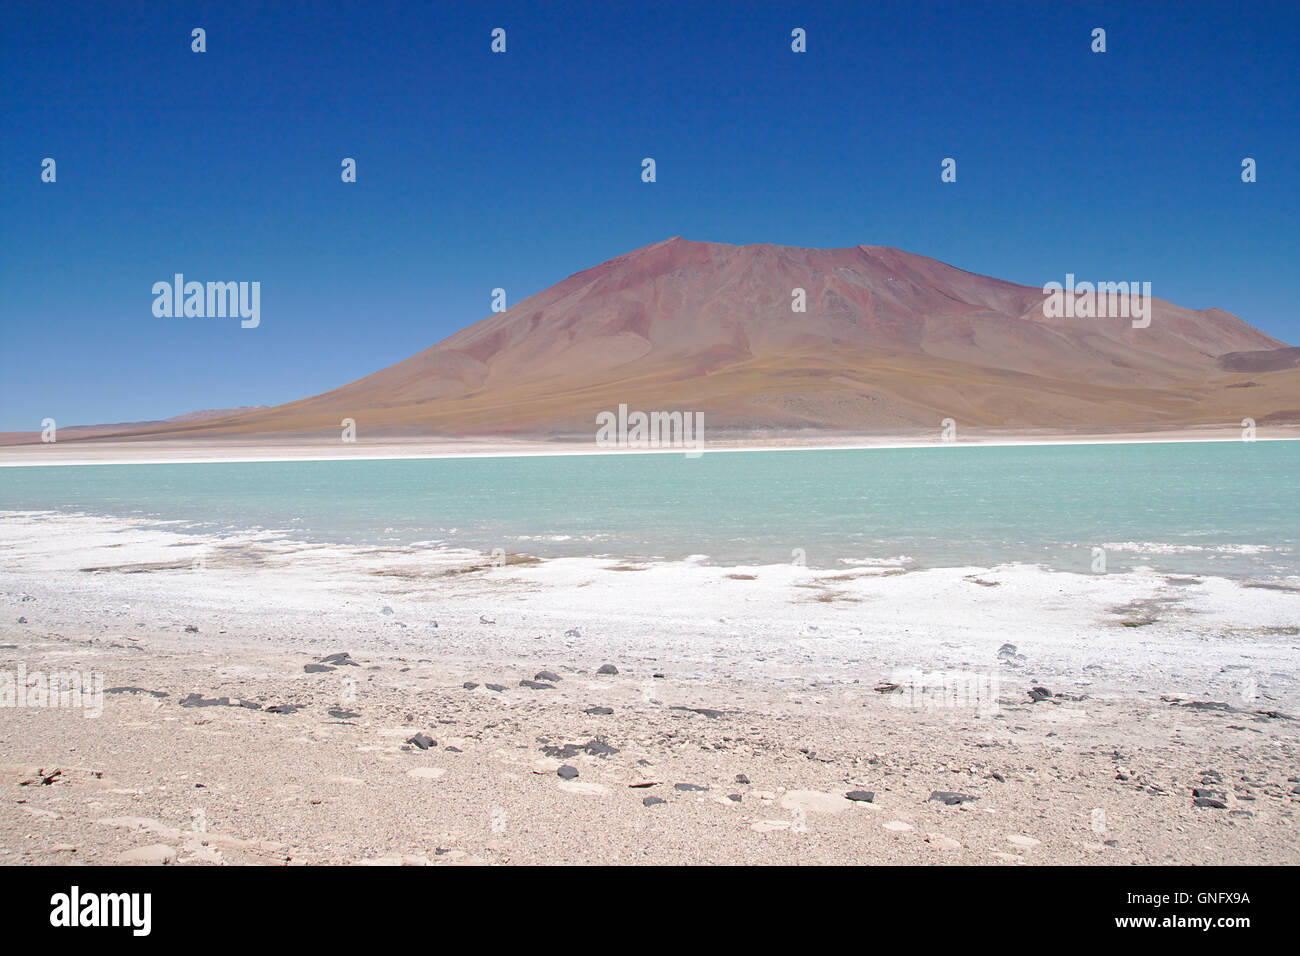 Laguna Verde (Green Lake) with salt playa and Juriques volcano, Bolivia - Stock Image